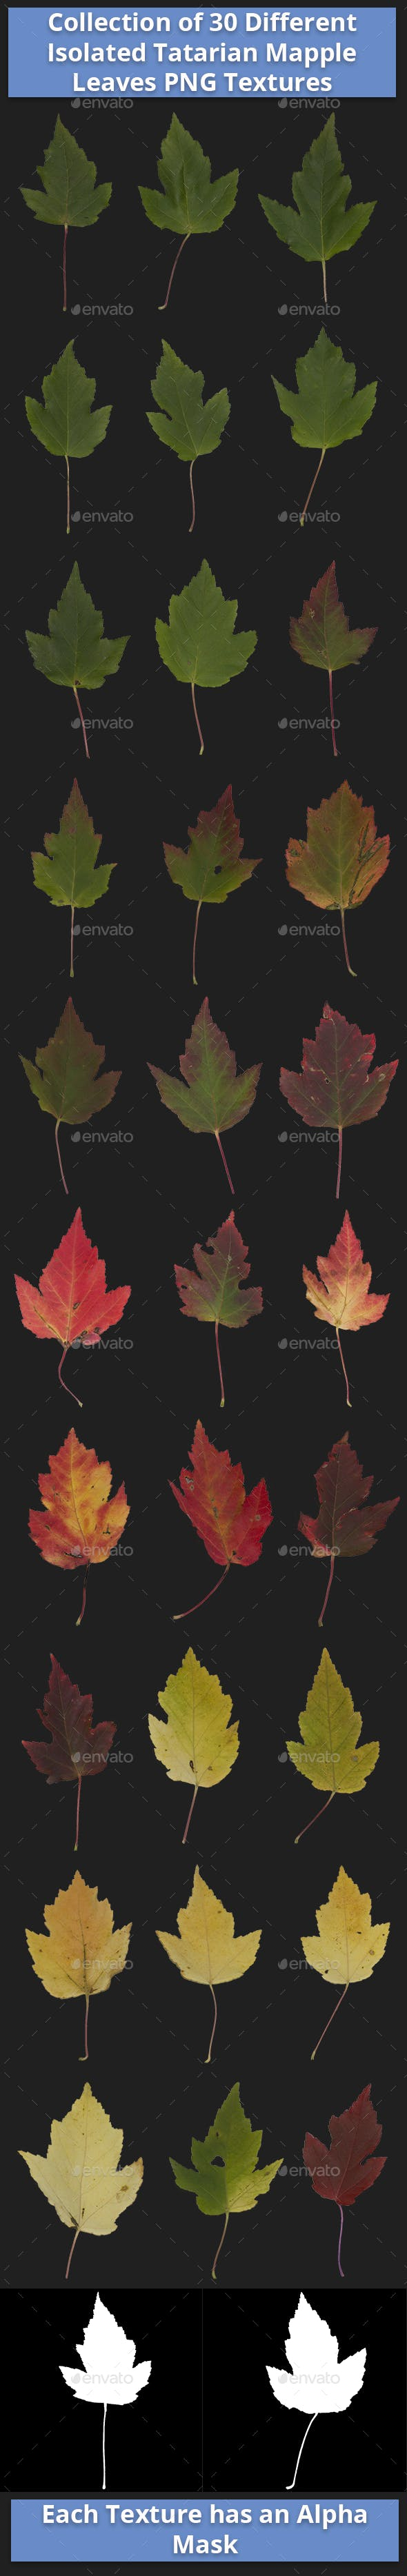 Collection of 30 Different Isolated Tatarian Mapple Leaves Textures - 3DOcean Item for Sale